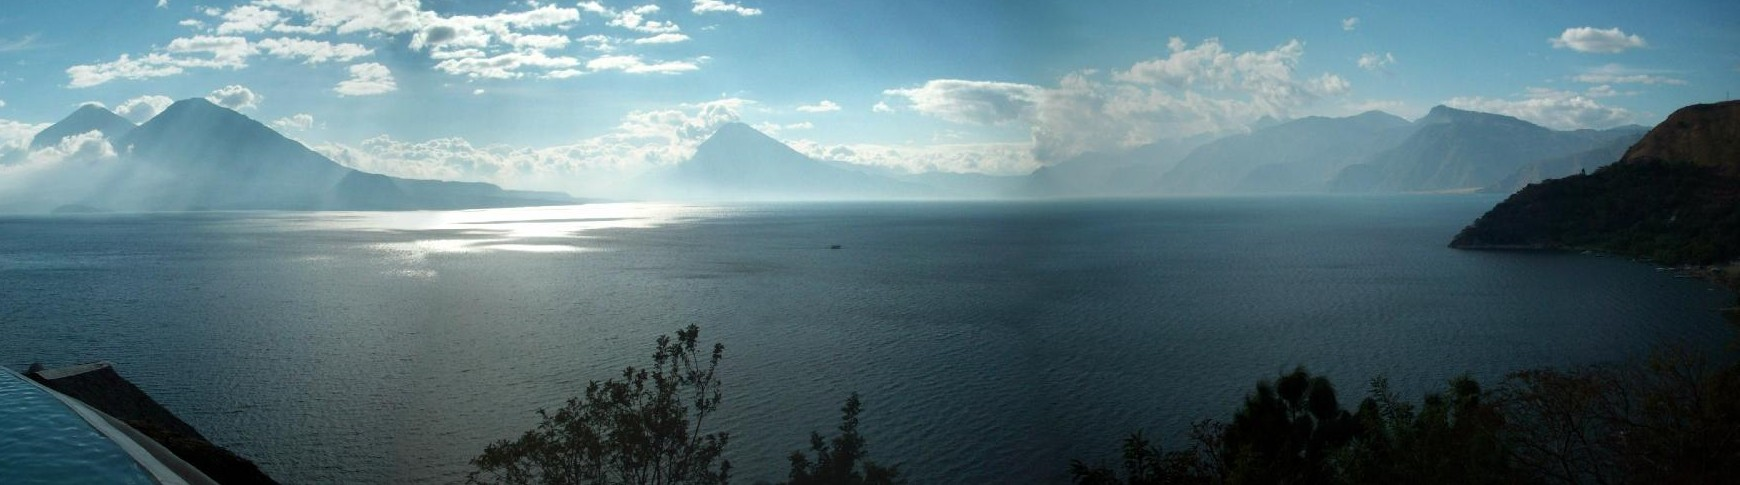 Karma Yoga Center @ Lake Atitlan Guatemala